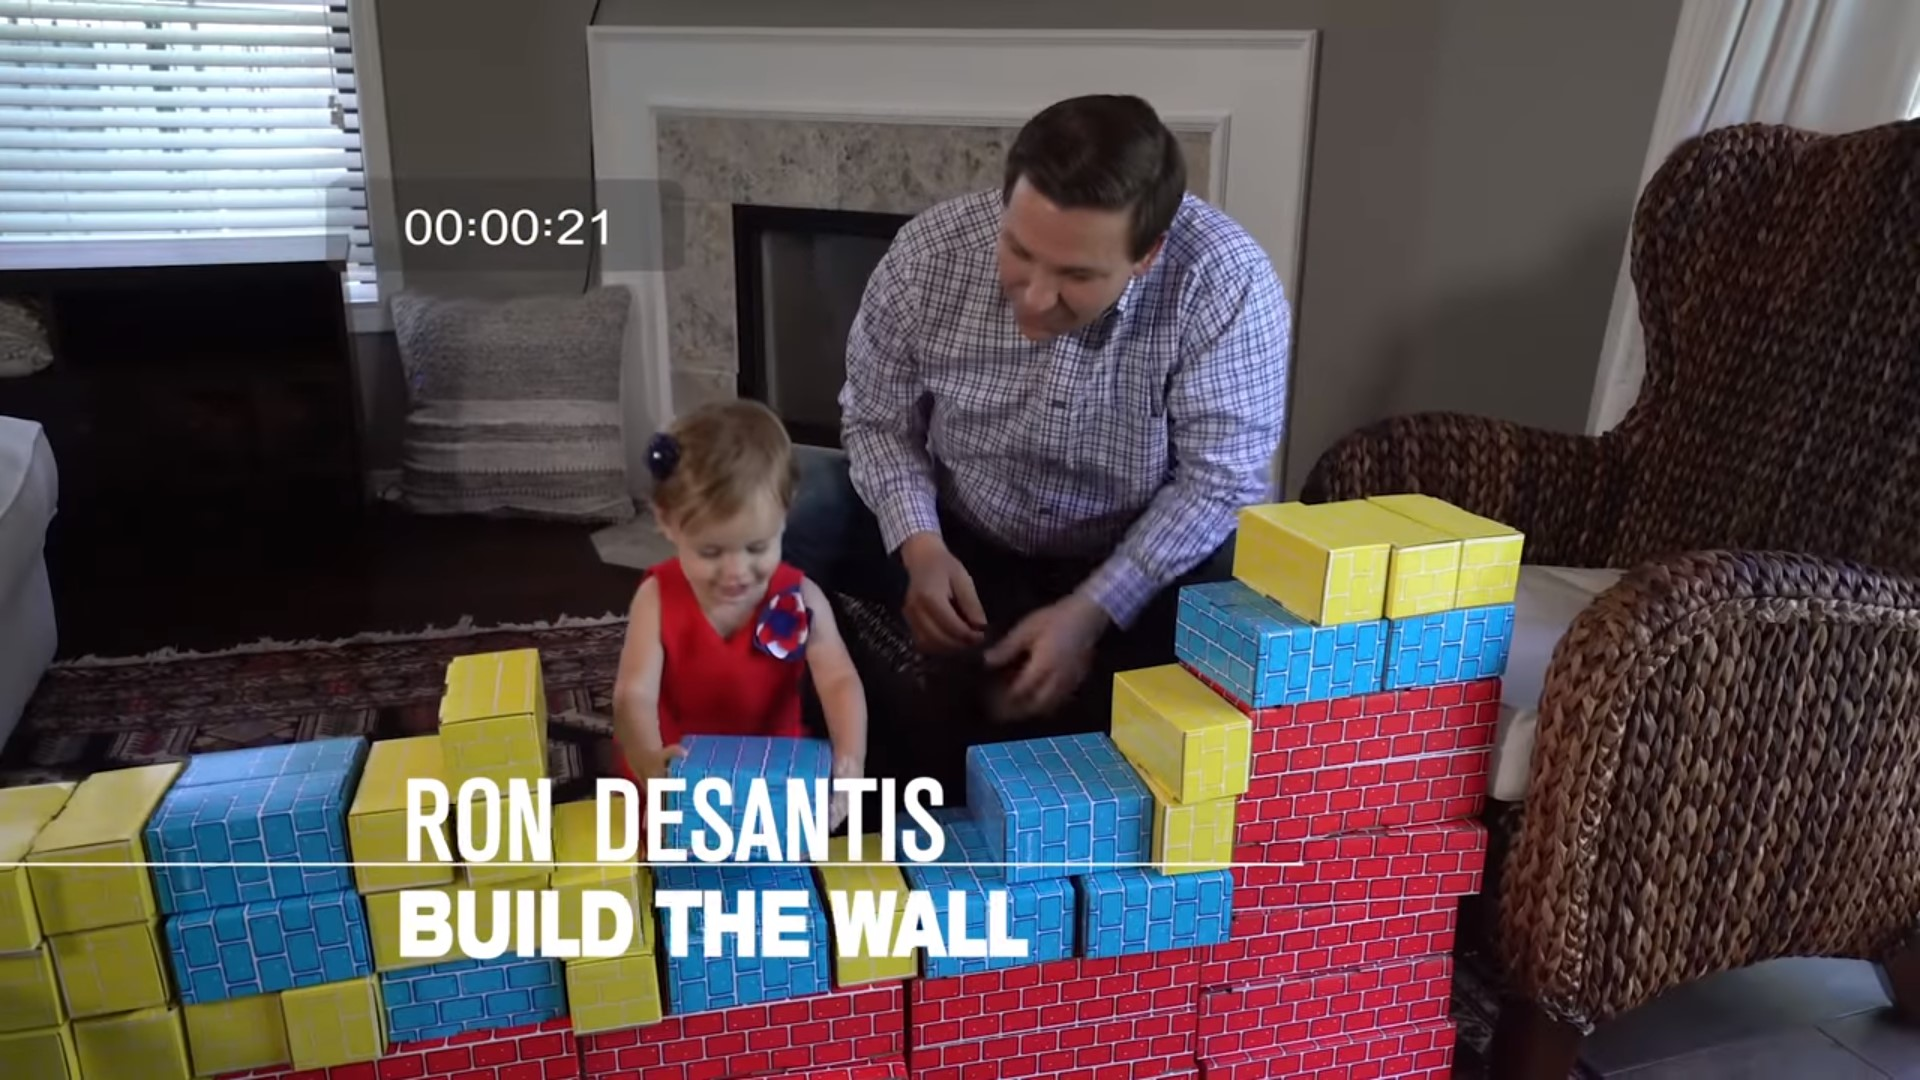 GOP Rep Teaches His Young Children To 'Build The Wall' In Trumpiest Campaign Ad Yet